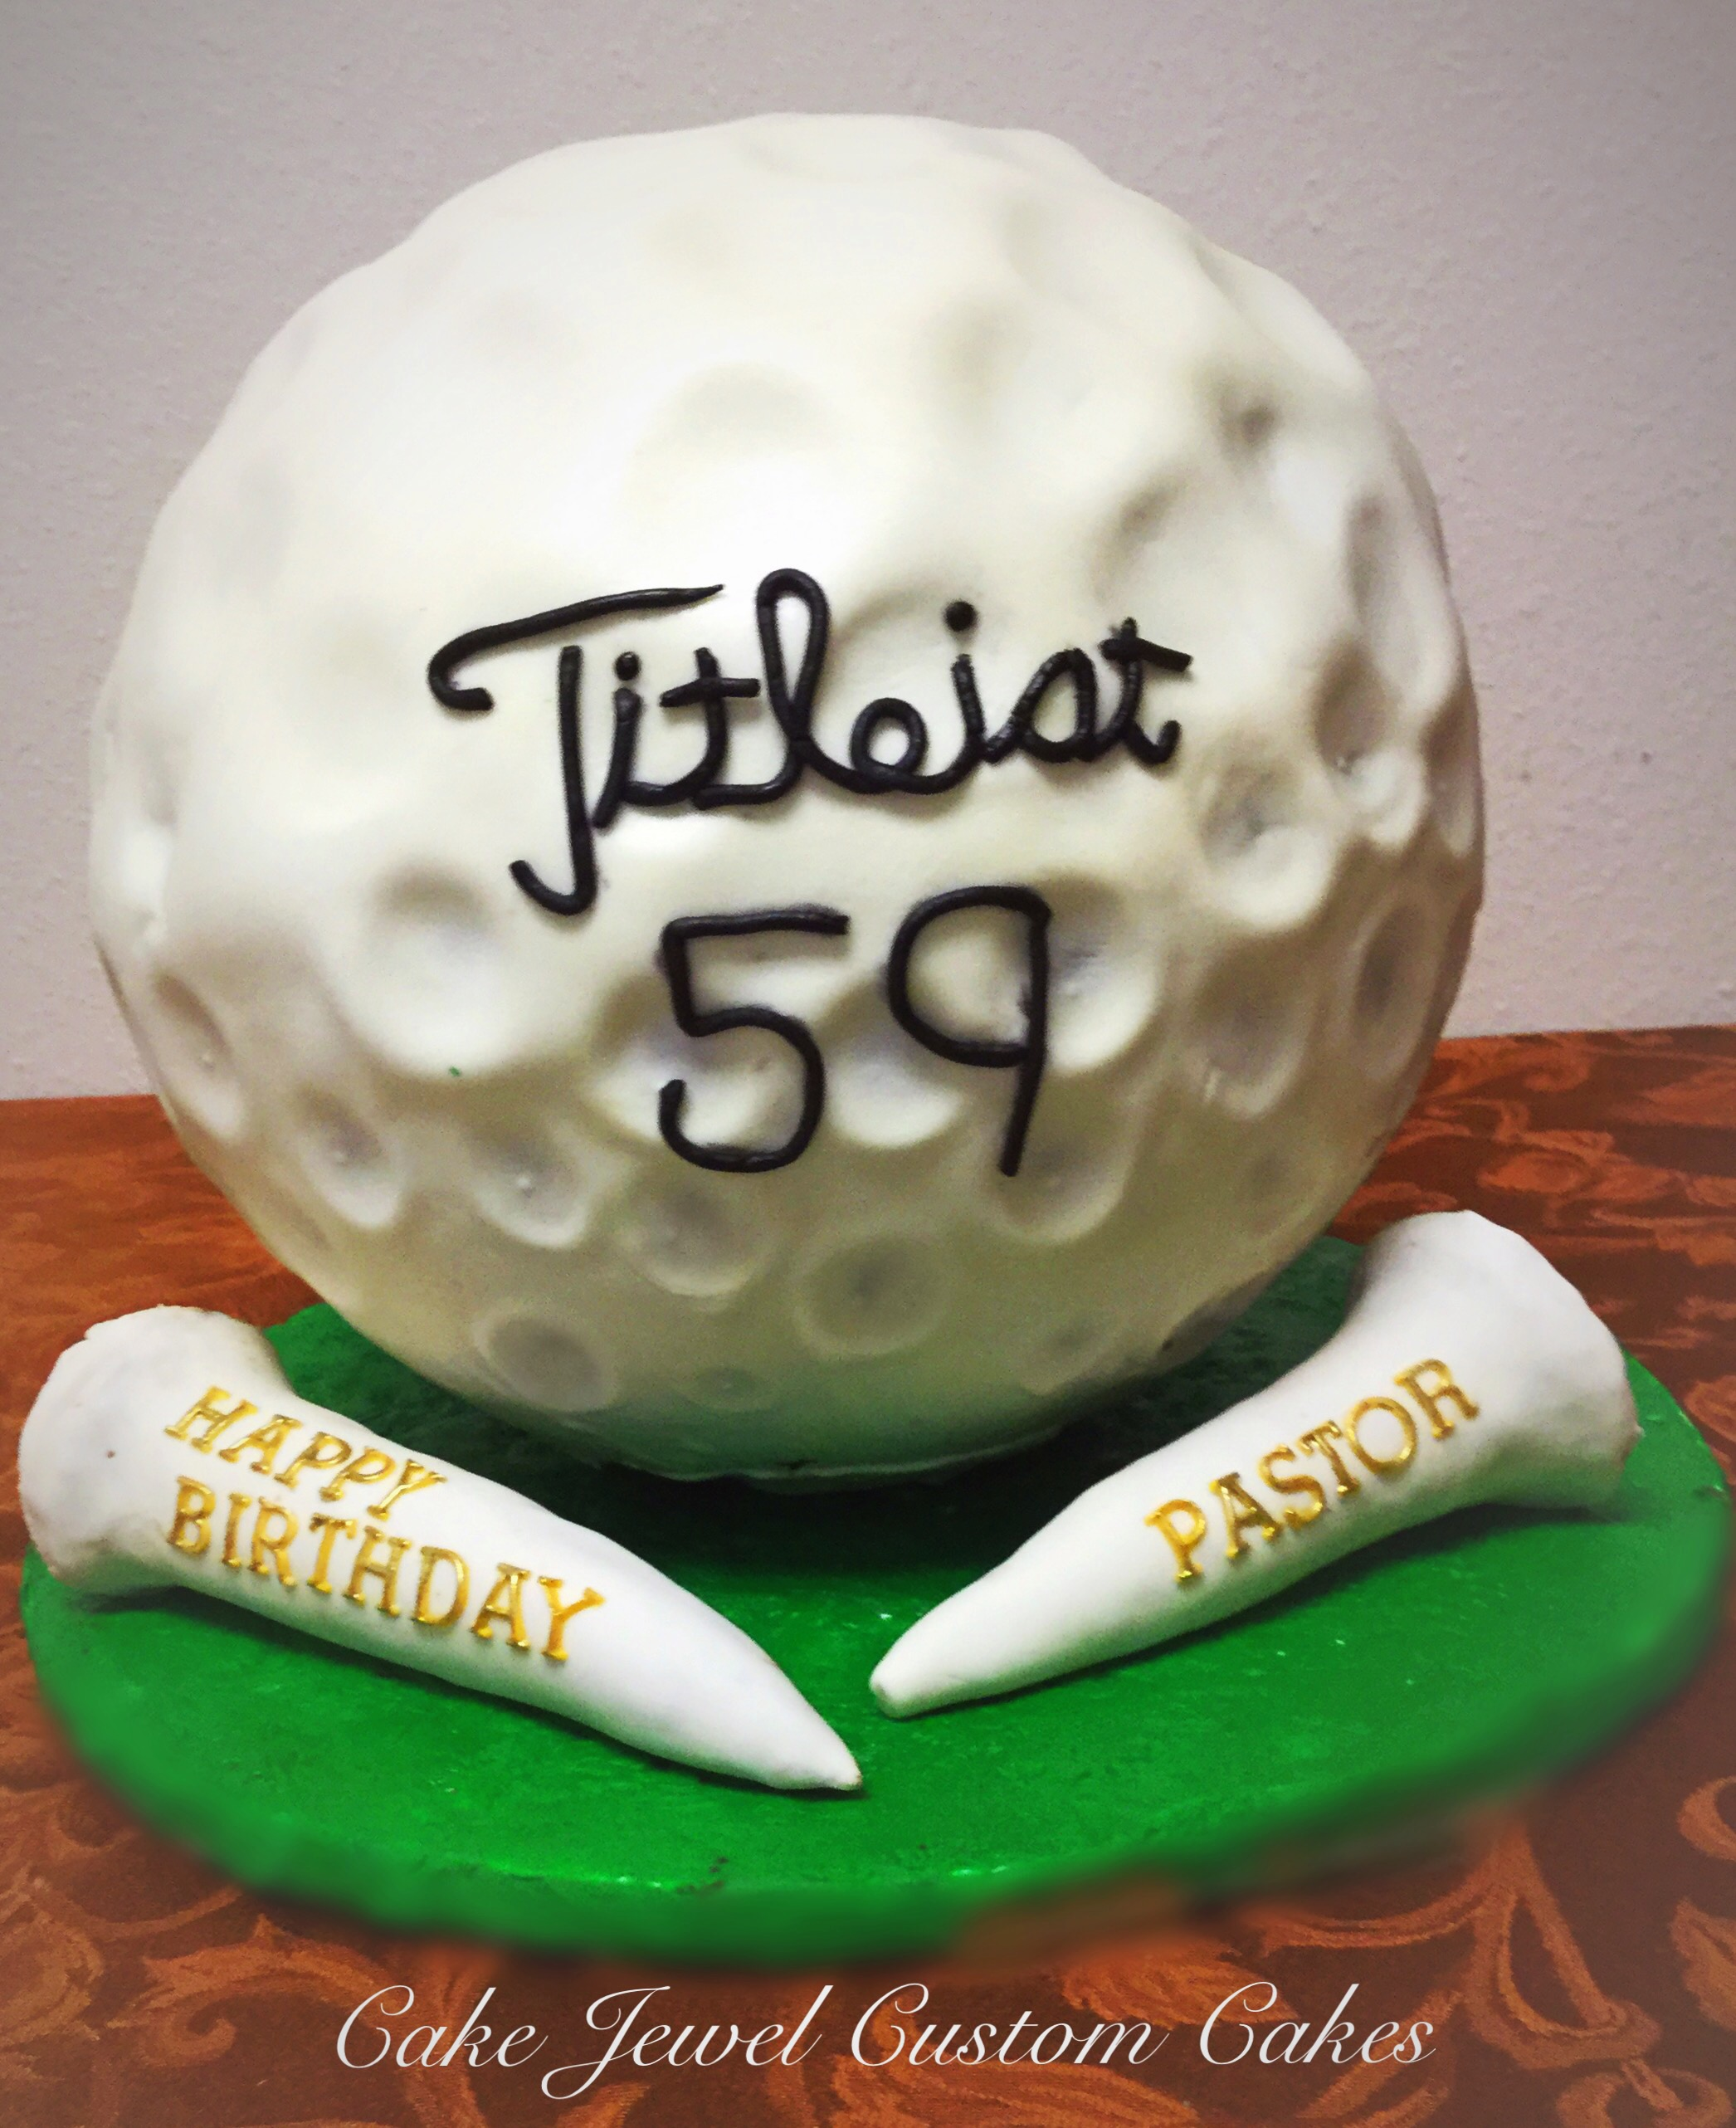 Gigantic golf ball cake